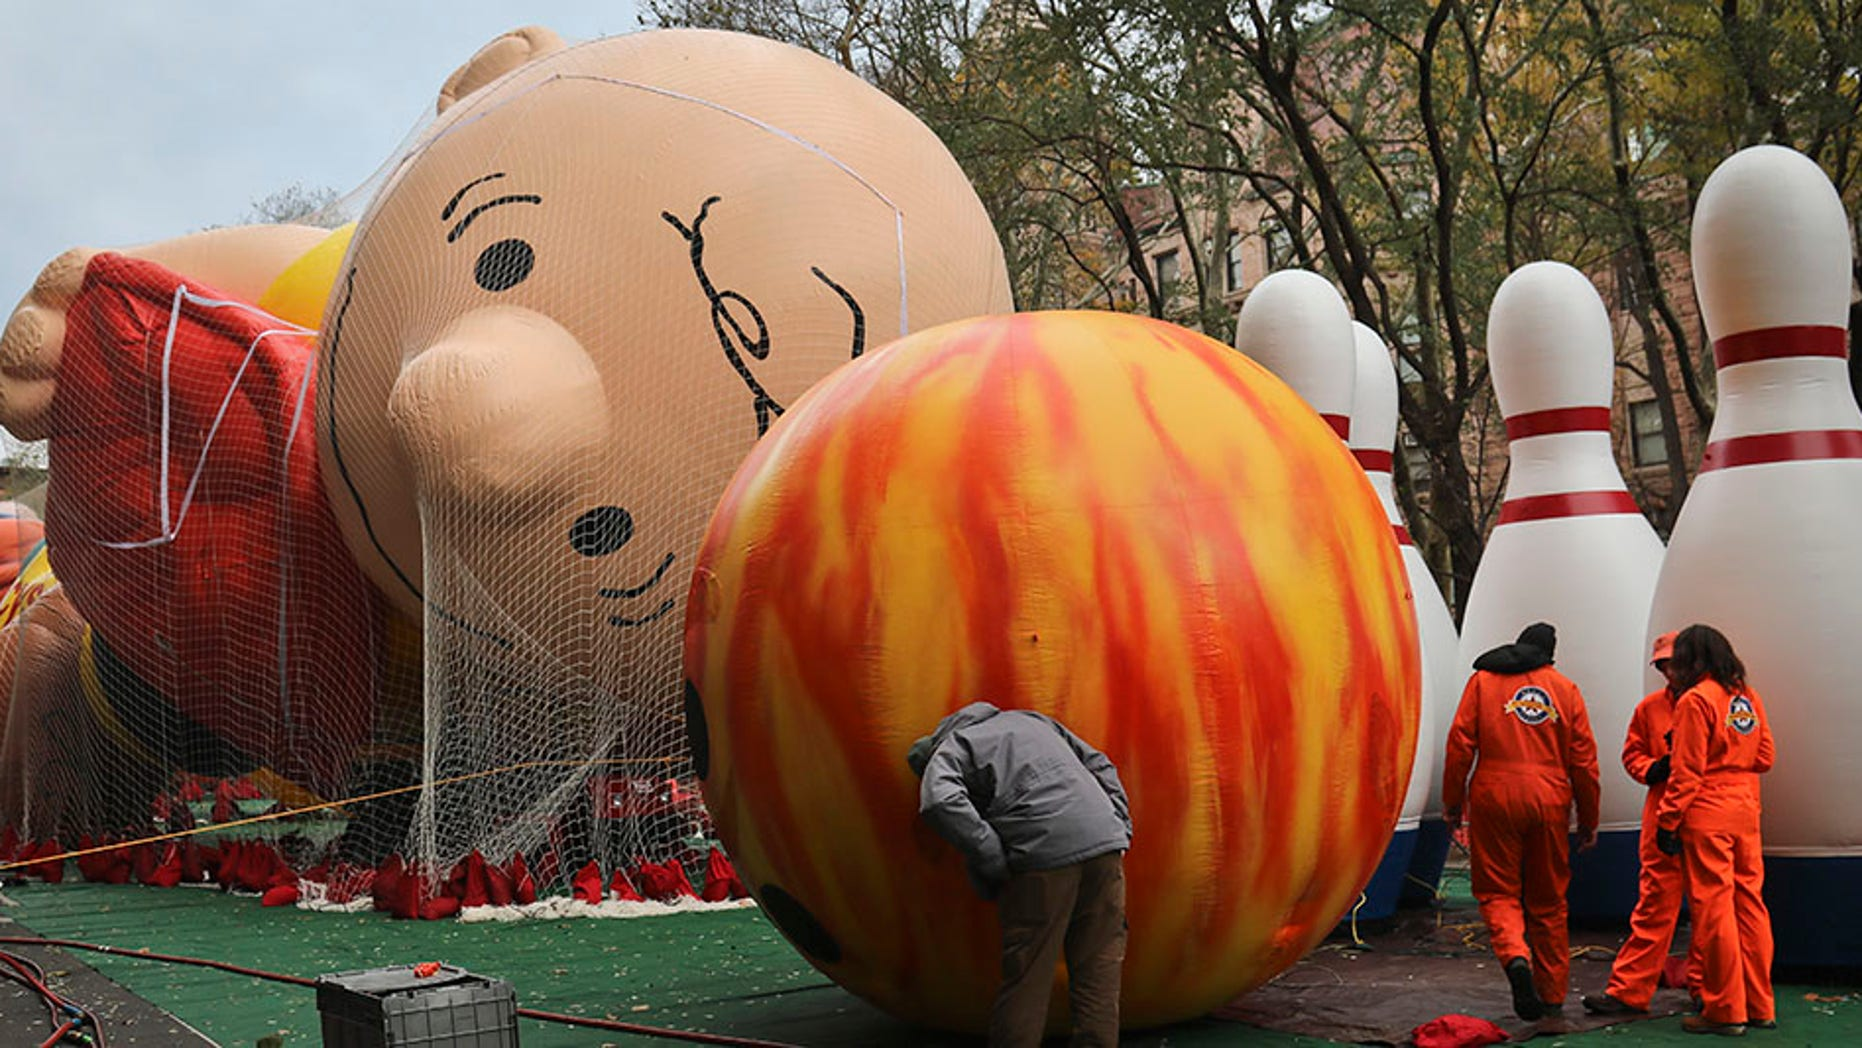 Giant character balloons, including Charlie Brown and Go Bowling, are inflated the night before their appearance in the 92nd Macy's Thanksgiving Day parade, Wednesday Nov. 21, 2018, in New York.